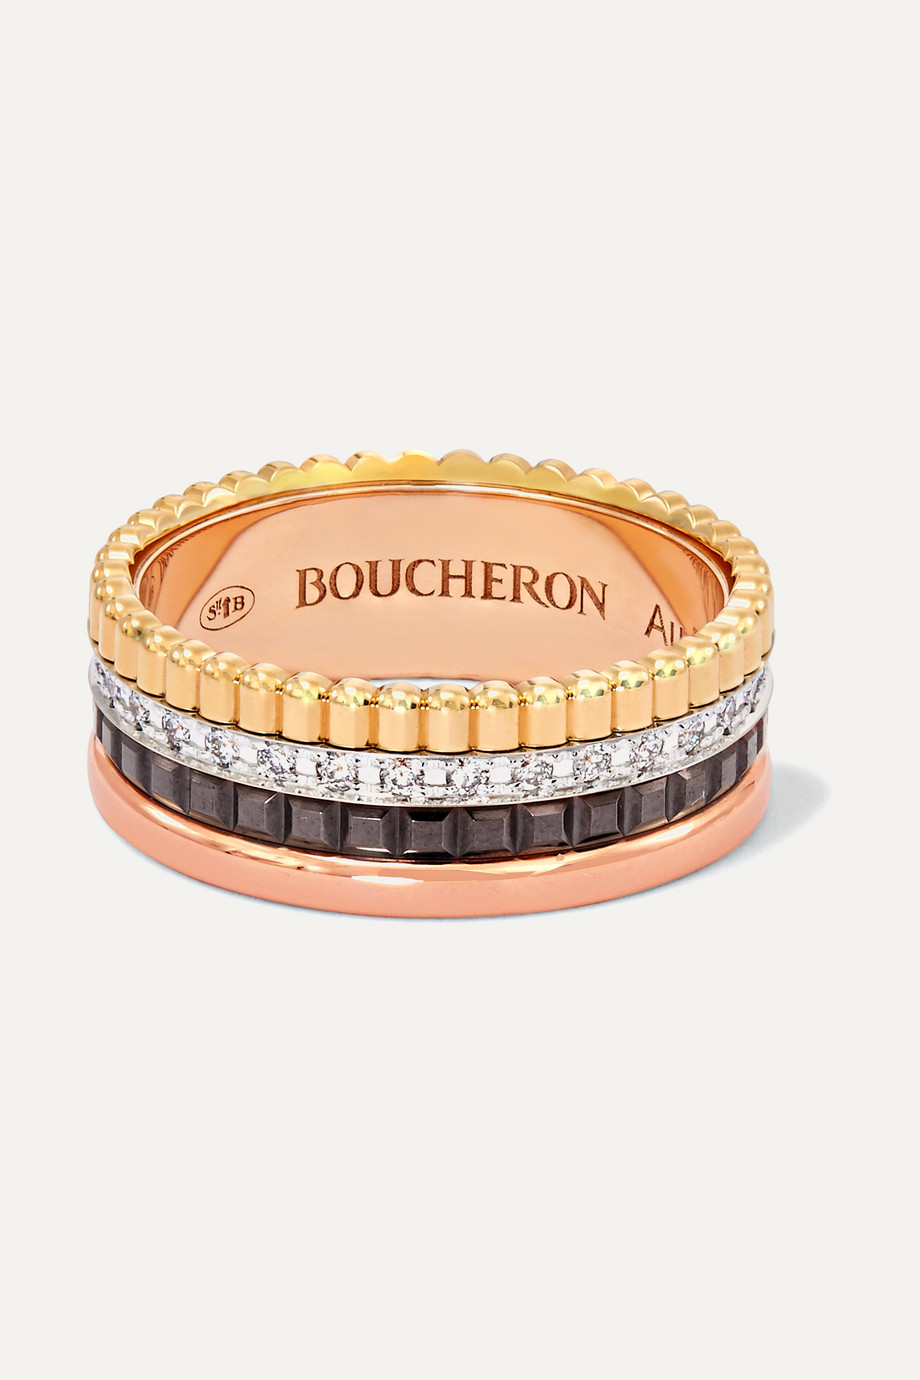 BOUCHERON Quatre Classique Small 18-karat yellow, white and rose gold, PVD and diamond ring